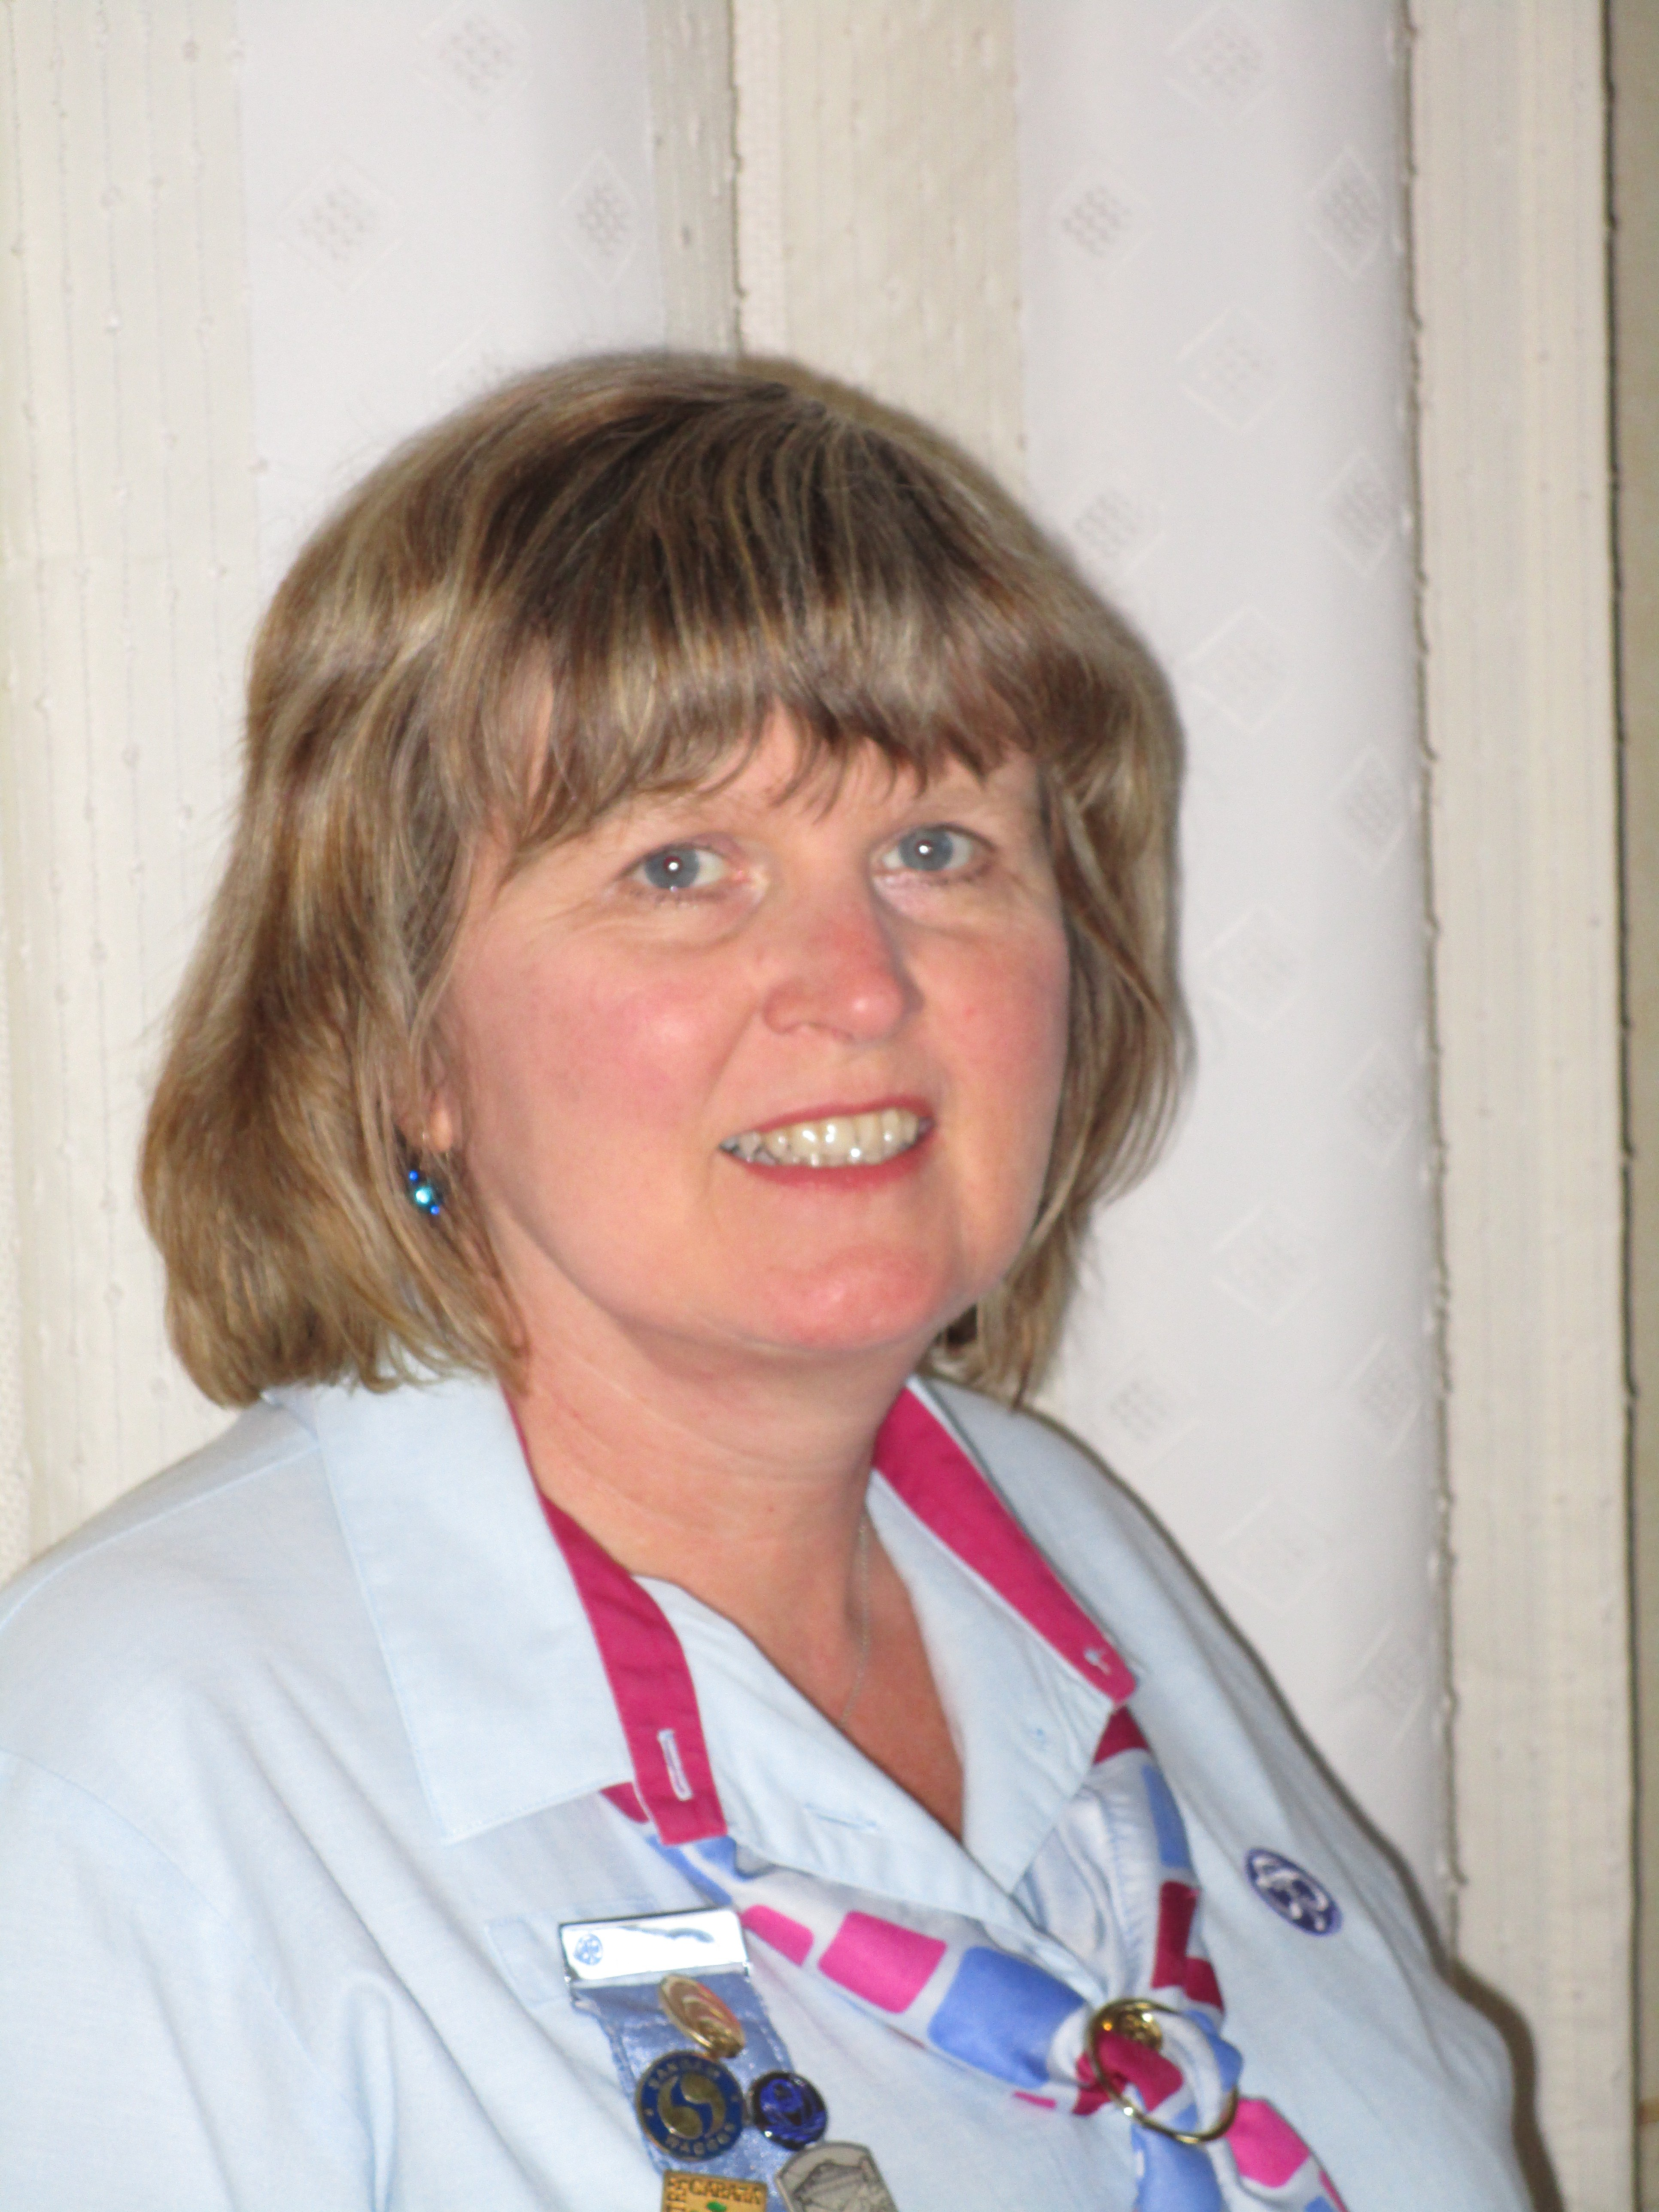 Picture of Ann Crome, County Commissioner for Girlguiding Bedfordshire